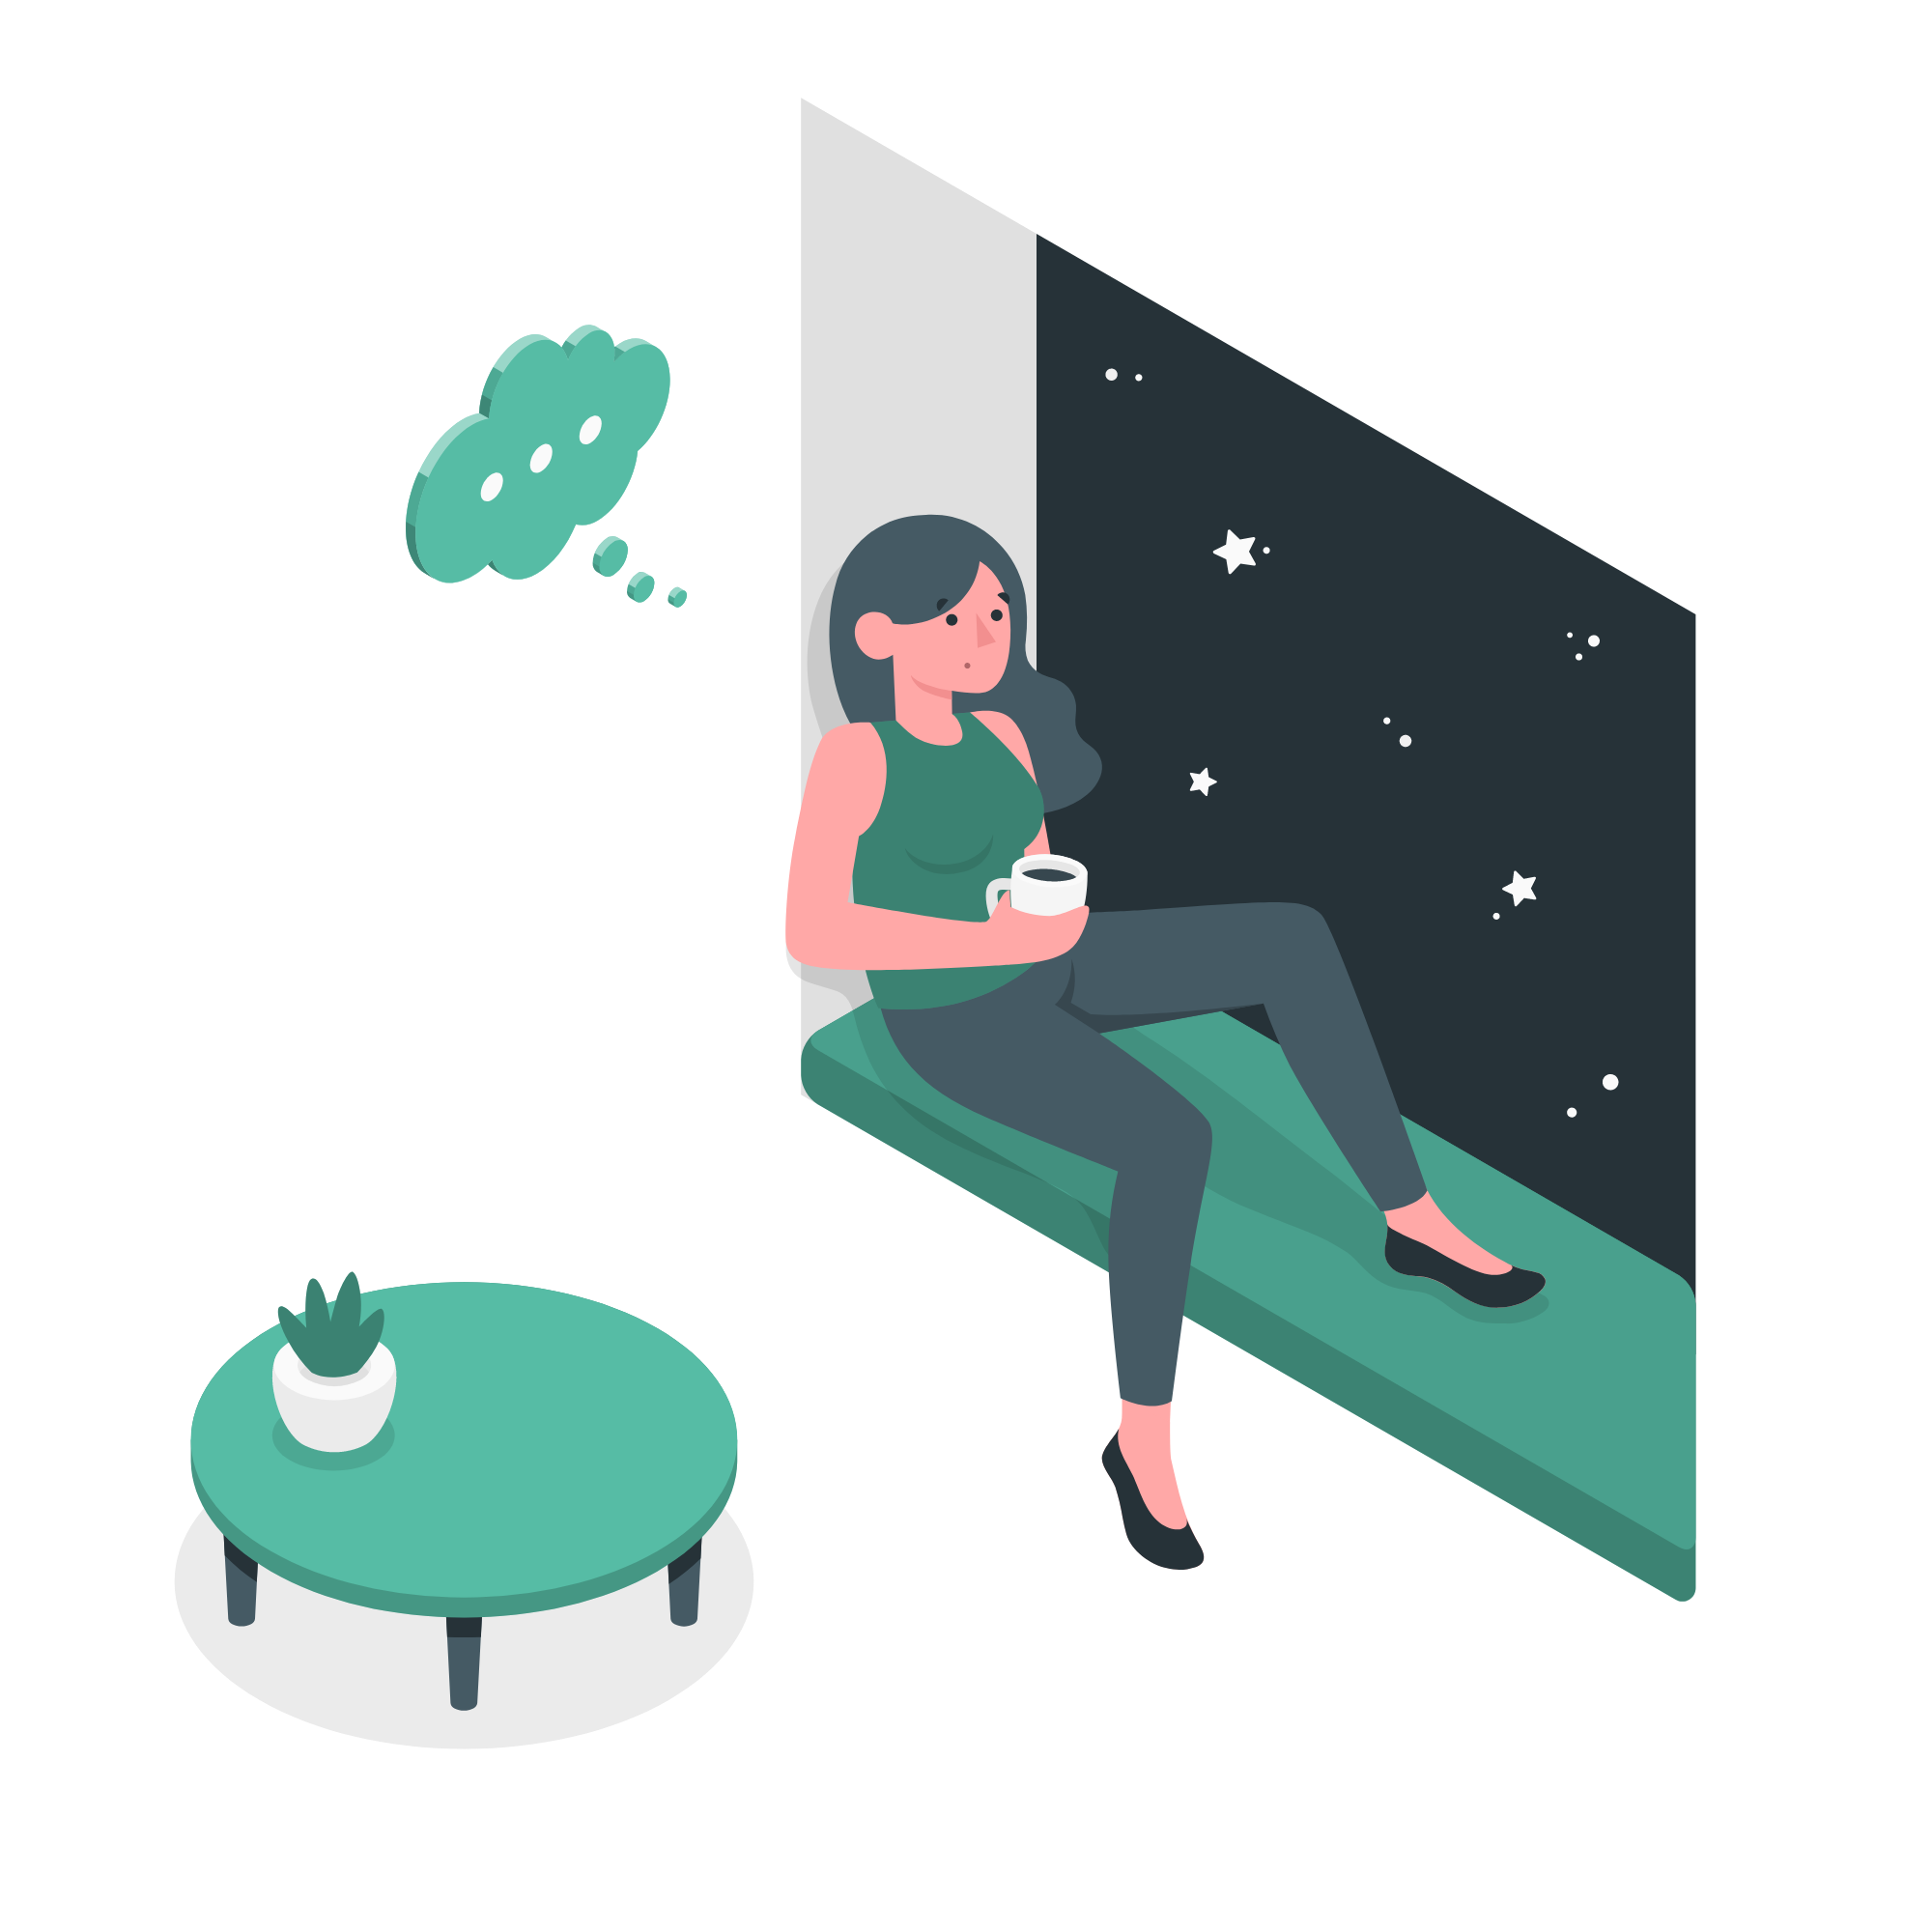 illustration of a person sitting and looking as if they are thinking